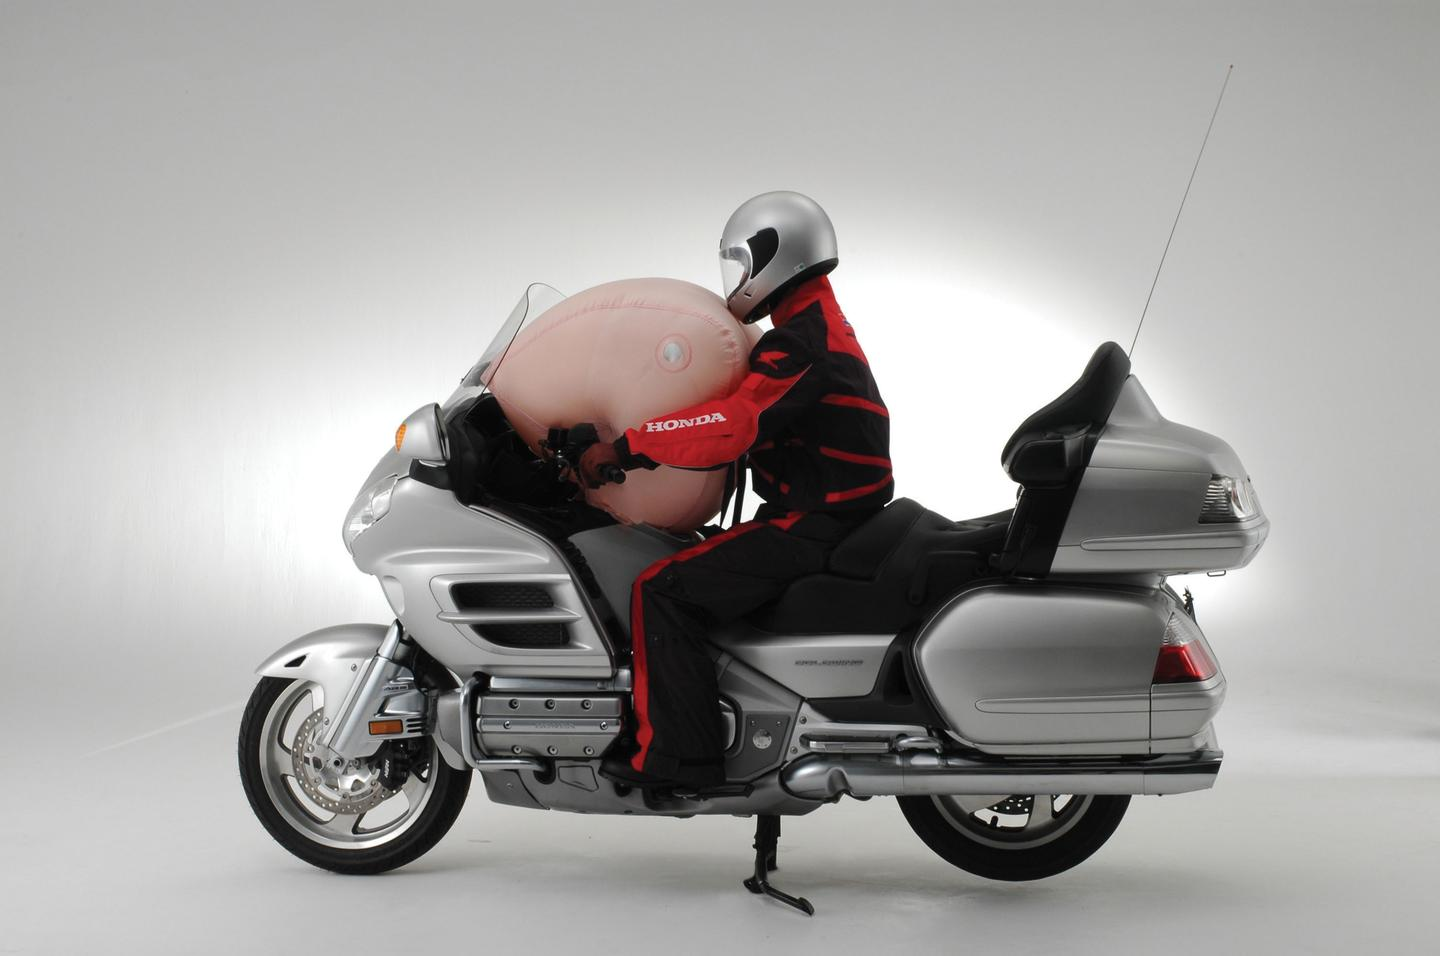 Honda's airbag-equipped Goldwing - deploying the airbag at the bike end.